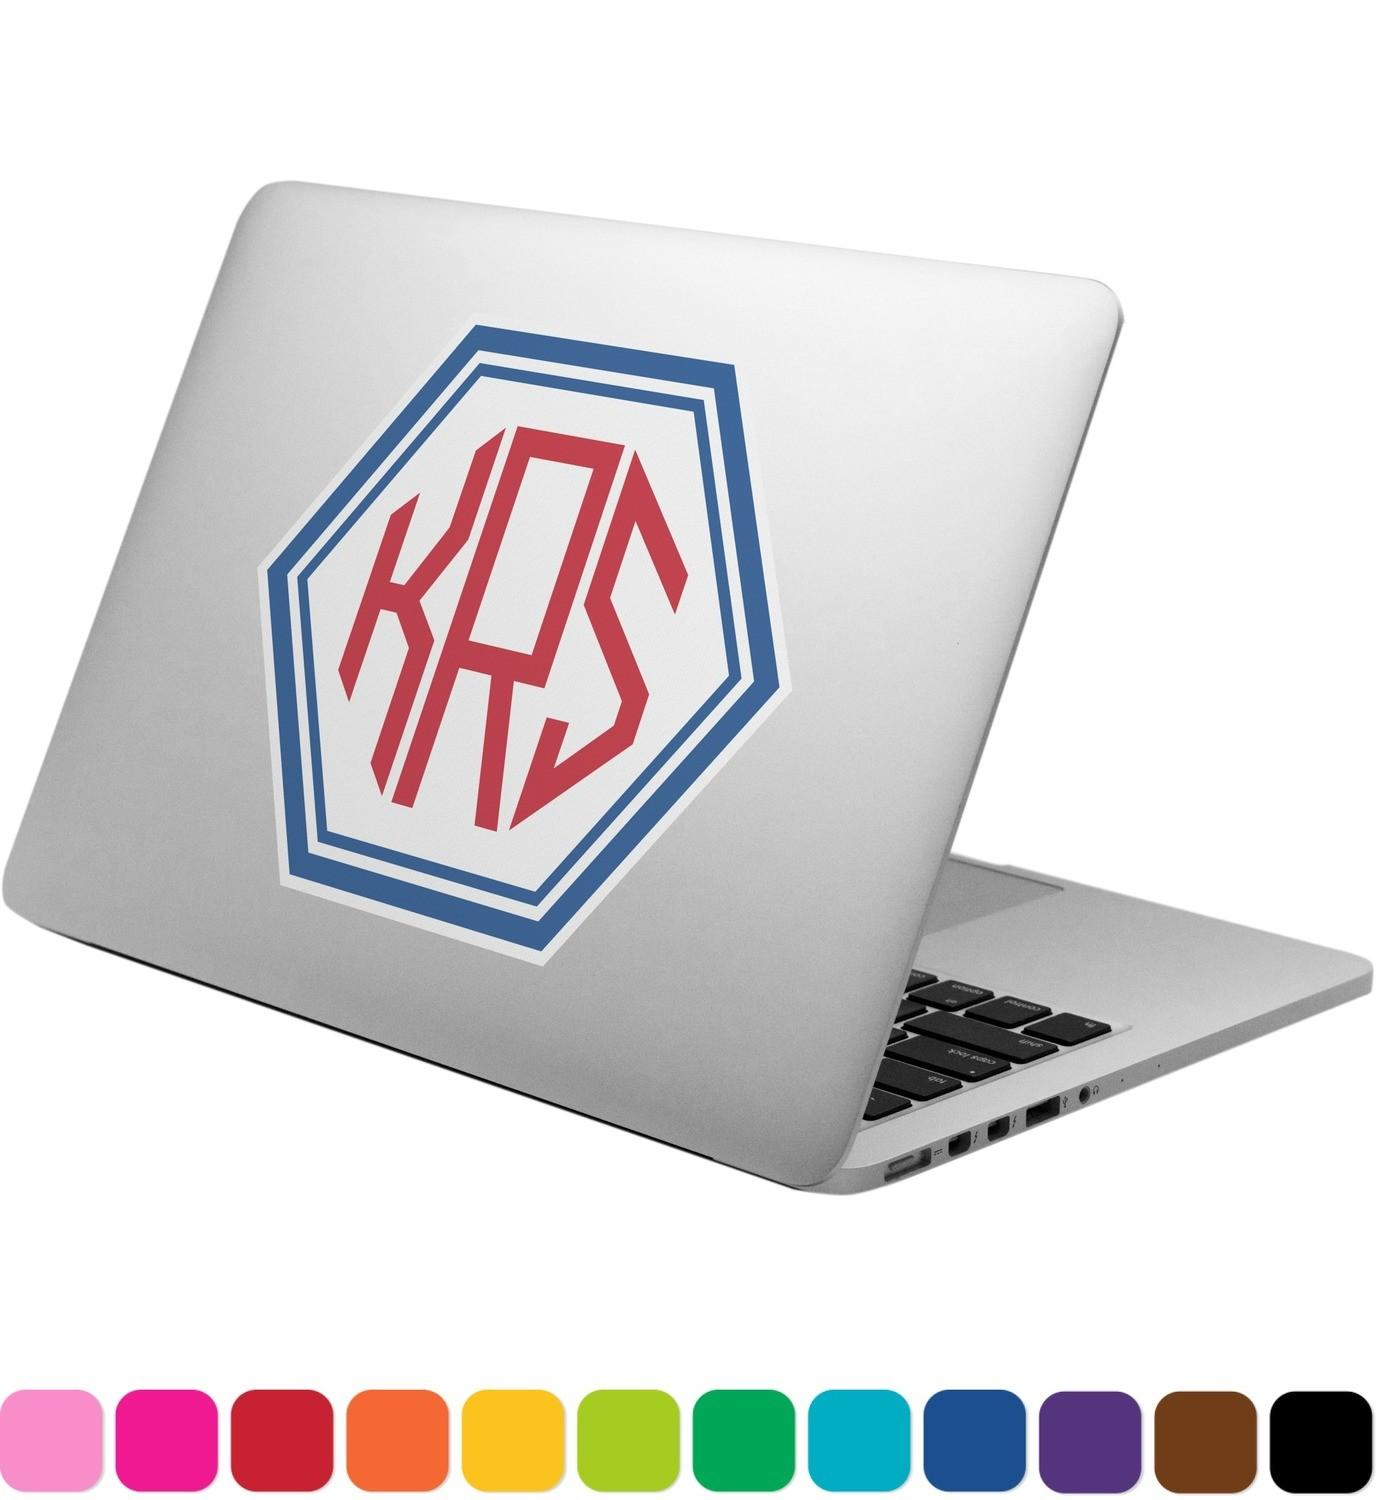 Knitted Argyle Skulls Laptop Decal Personalized